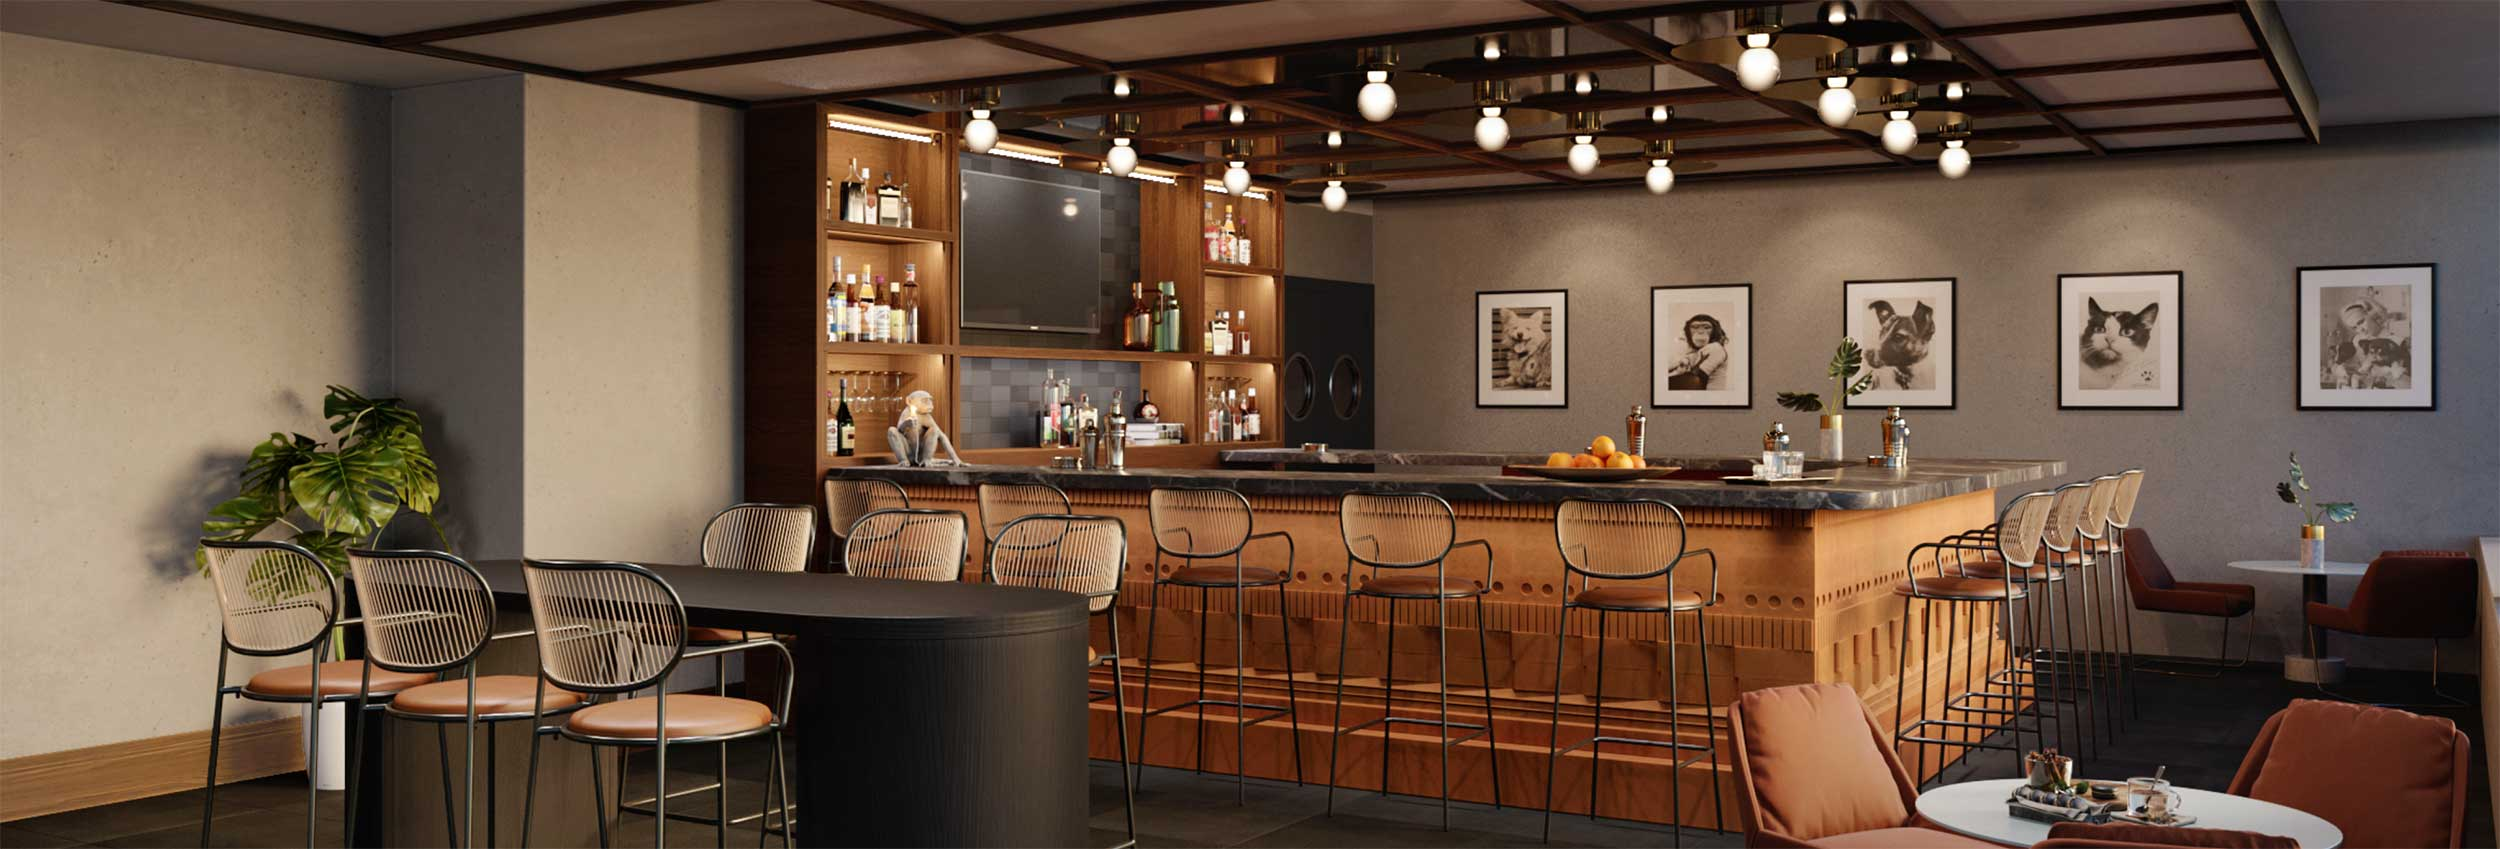 Rendering of the Corner Bar and Varied Seating at Baker & Able in Huntsville, AL